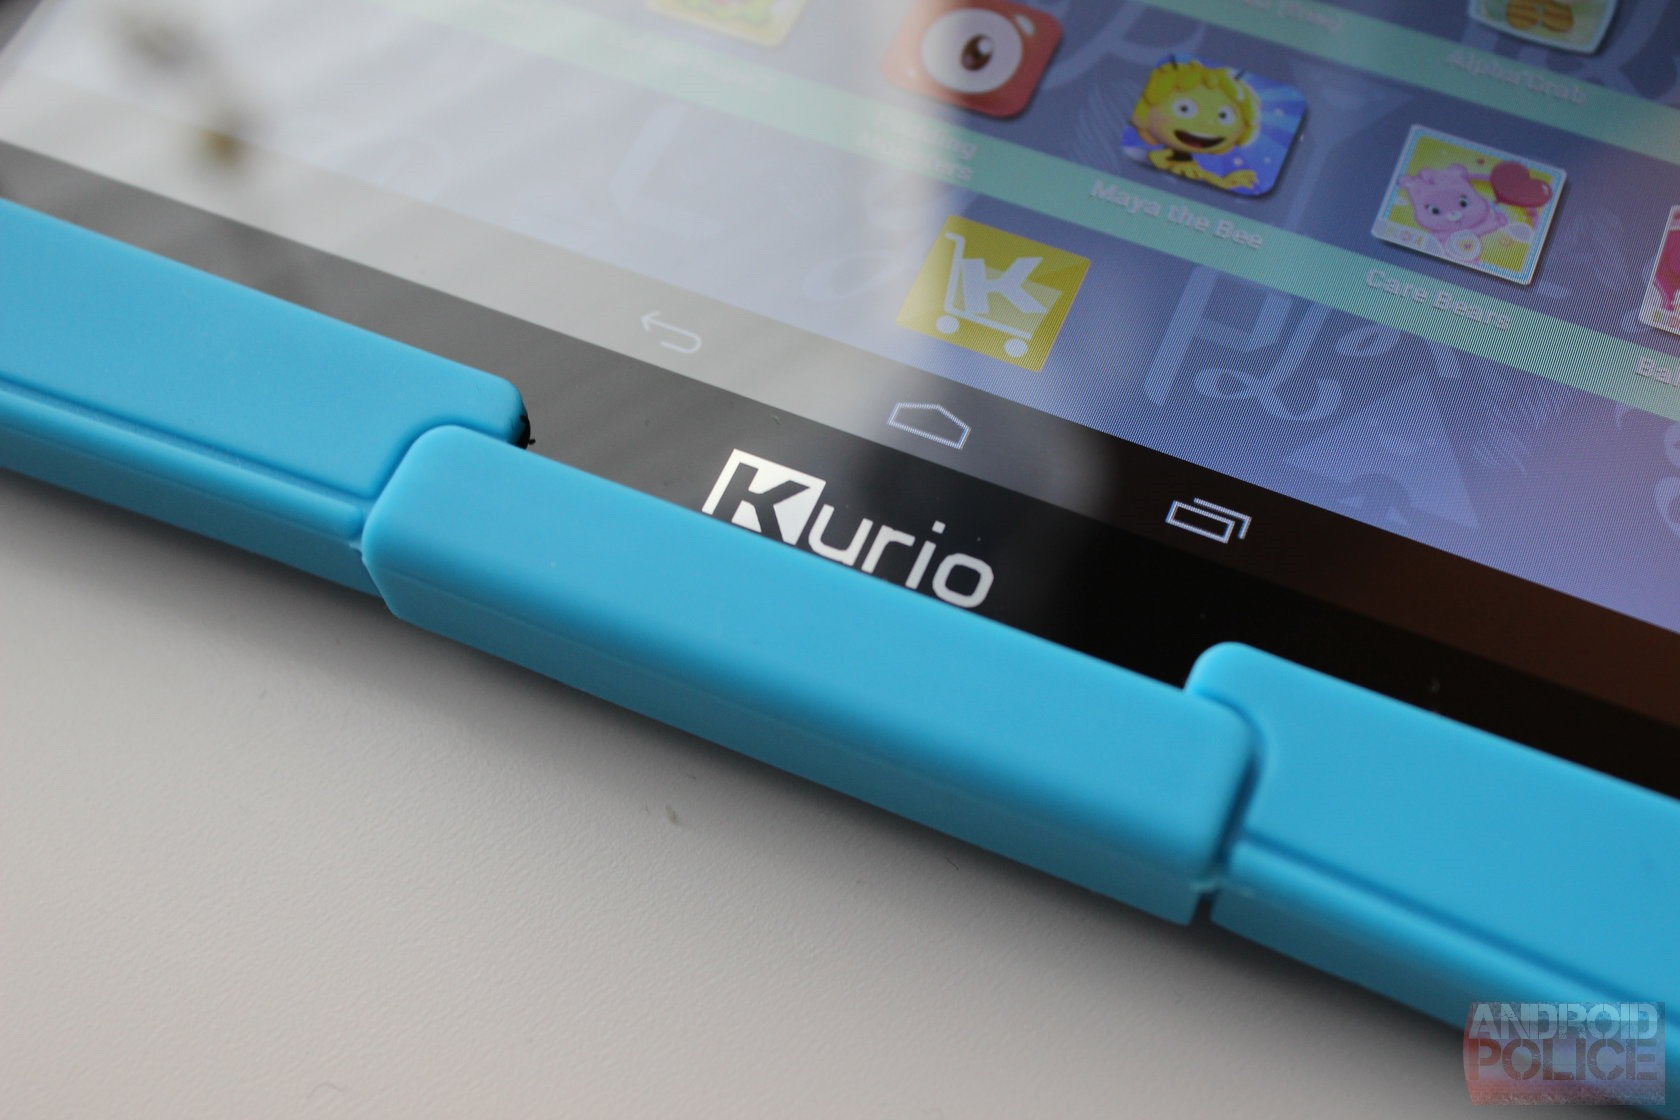 Kurio xtreme kids tablet lightning review a good interface